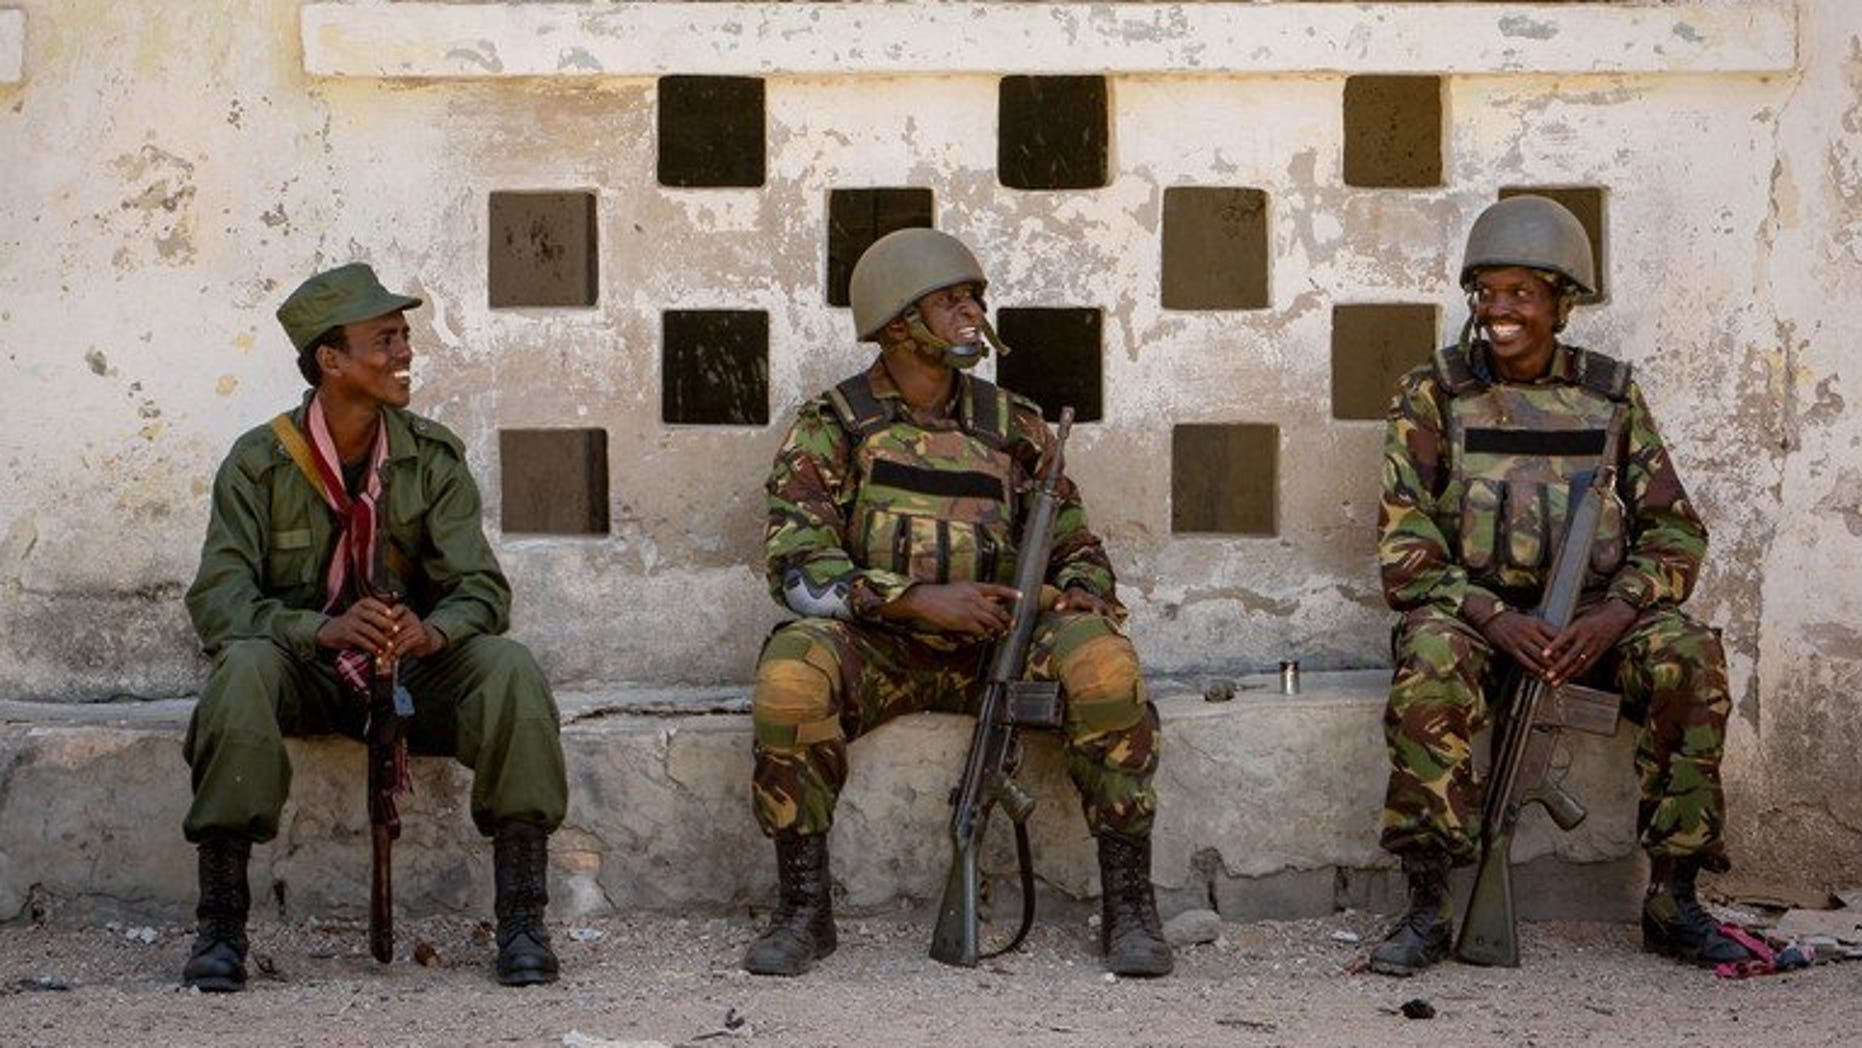 Soldiers of the Kenyan Contingent of AMISOM rest in the southern Somali port city of Kismayo on October 5, 2012. Two Kenyan officials kidnapped by the Somali Islamist group Shebab during an attack in northeastern Kenya in 2012 have been released, the Kenyan presidency announced Tuesday.